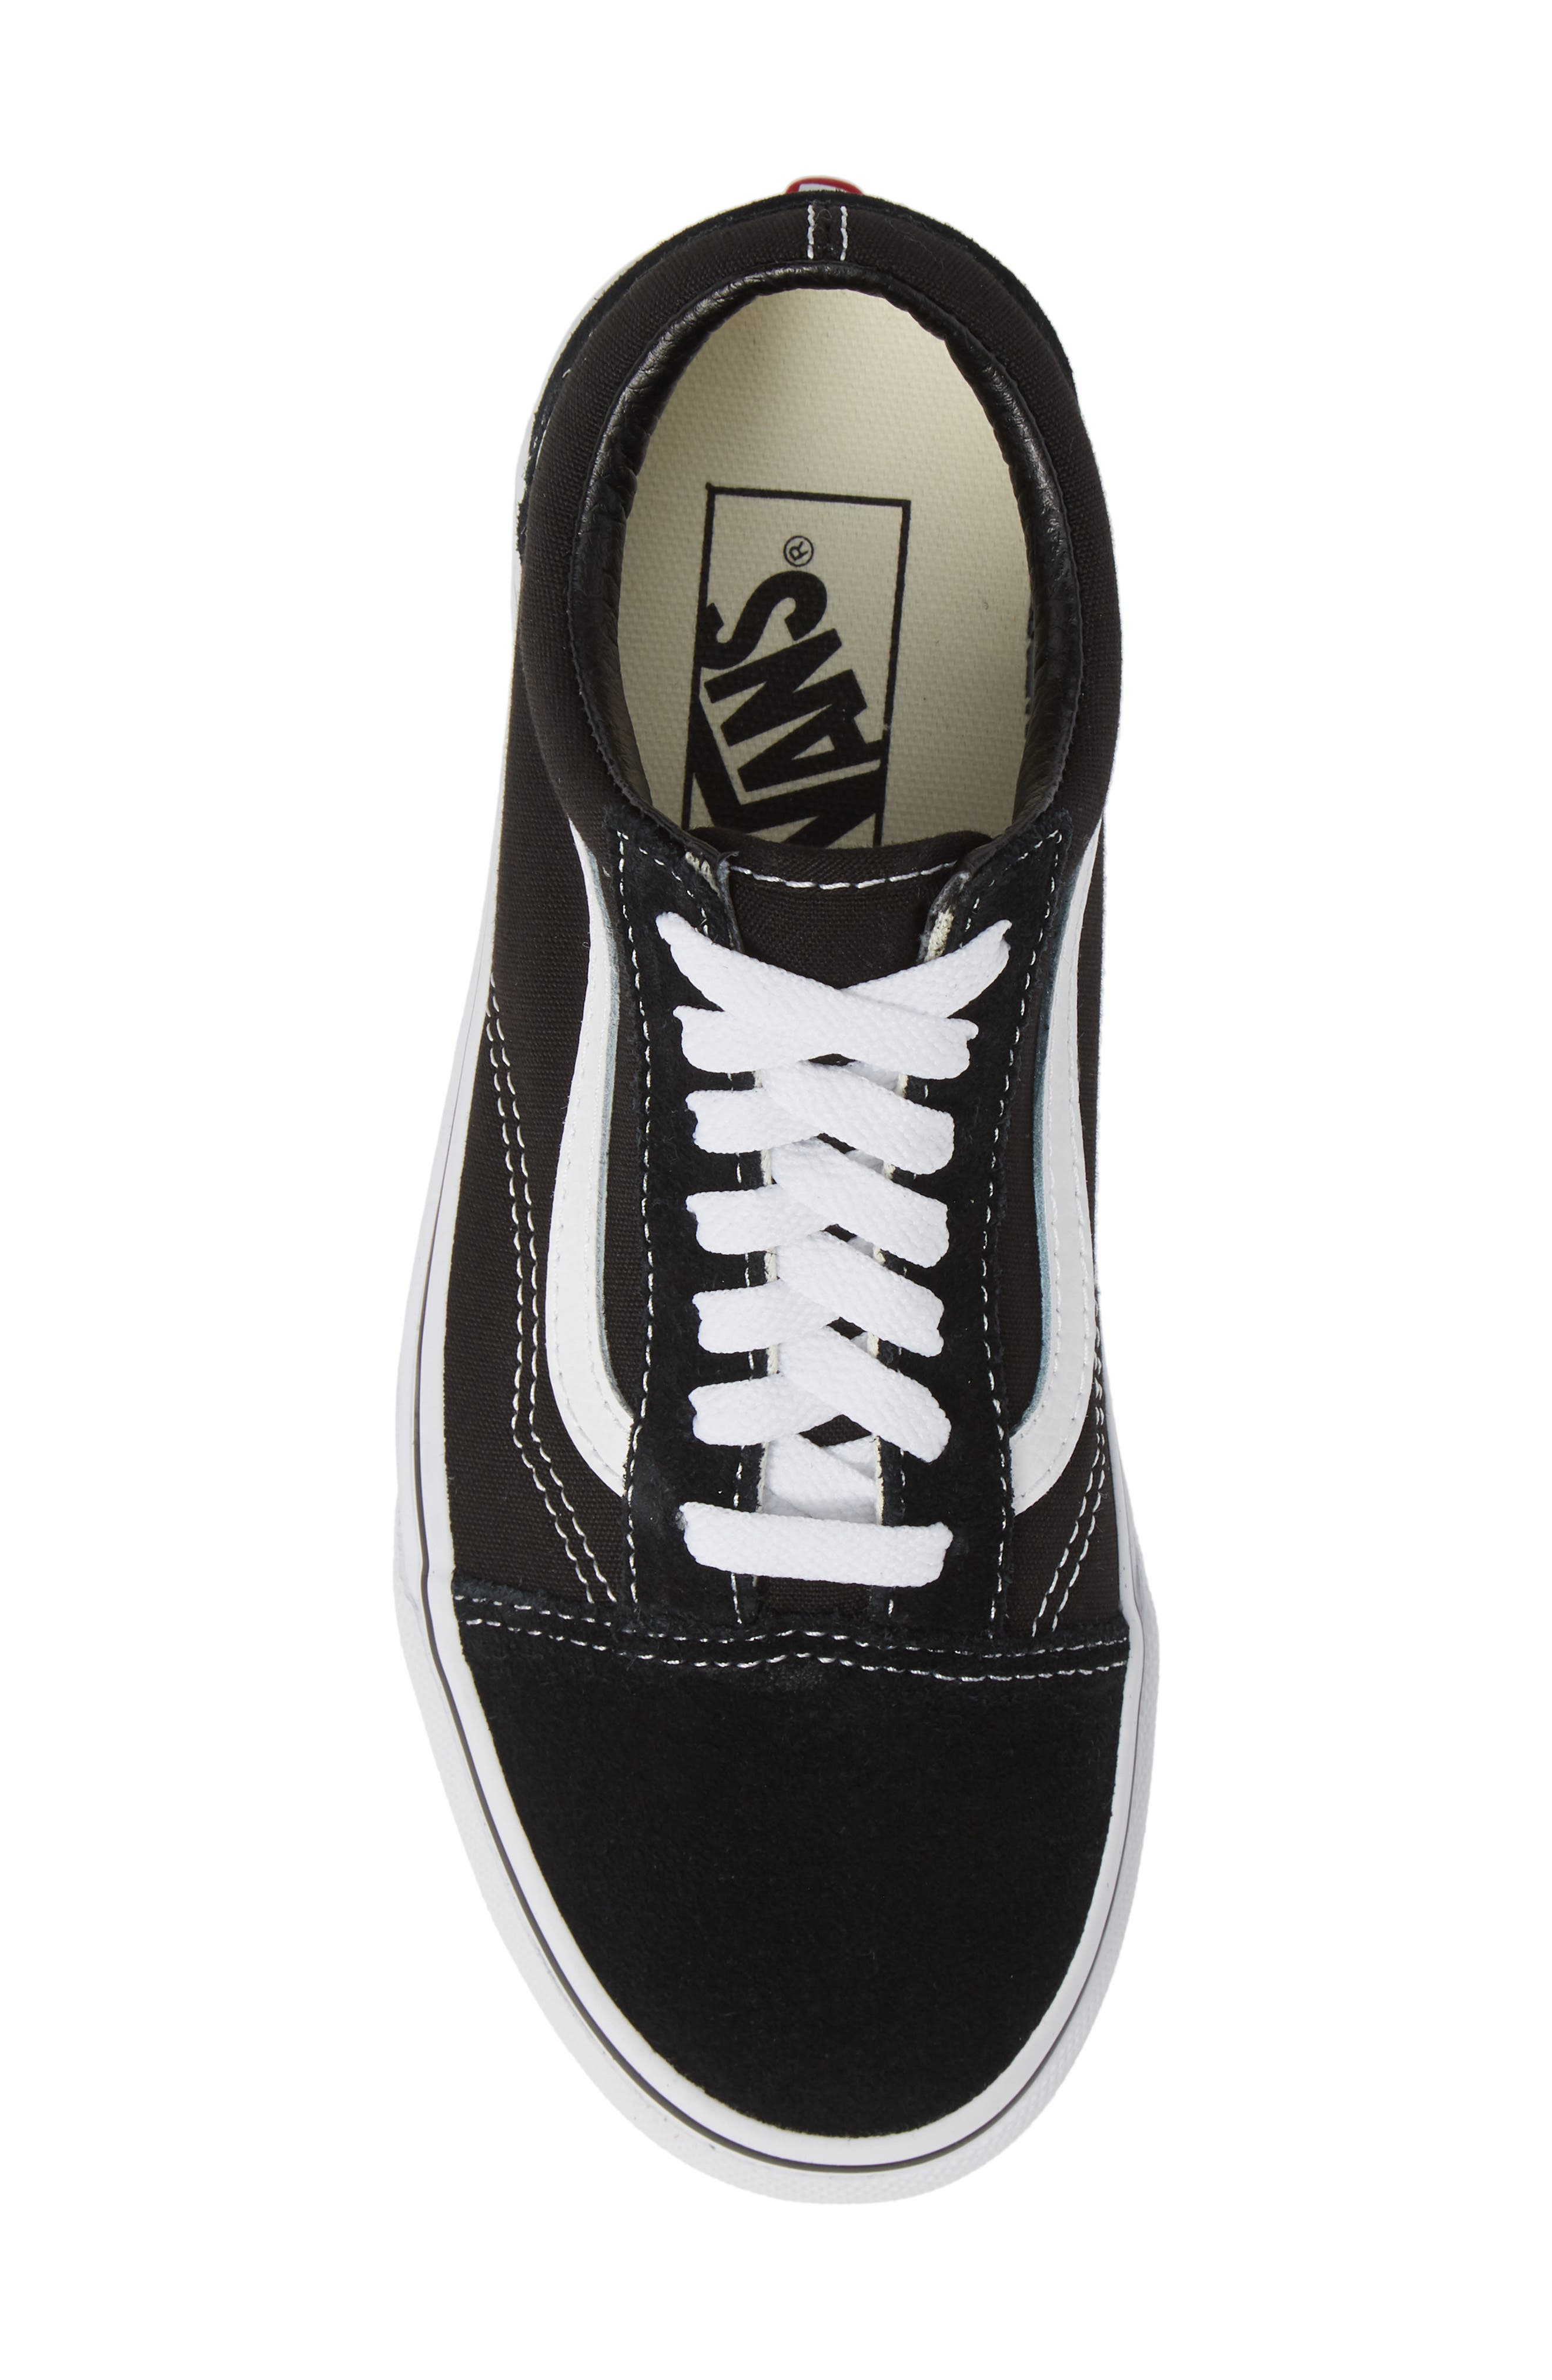 VANS, 'Old Skool' Skate Sneaker, Alternate thumbnail 5, color, BLACK/ WHITE SUEDE CANVAS